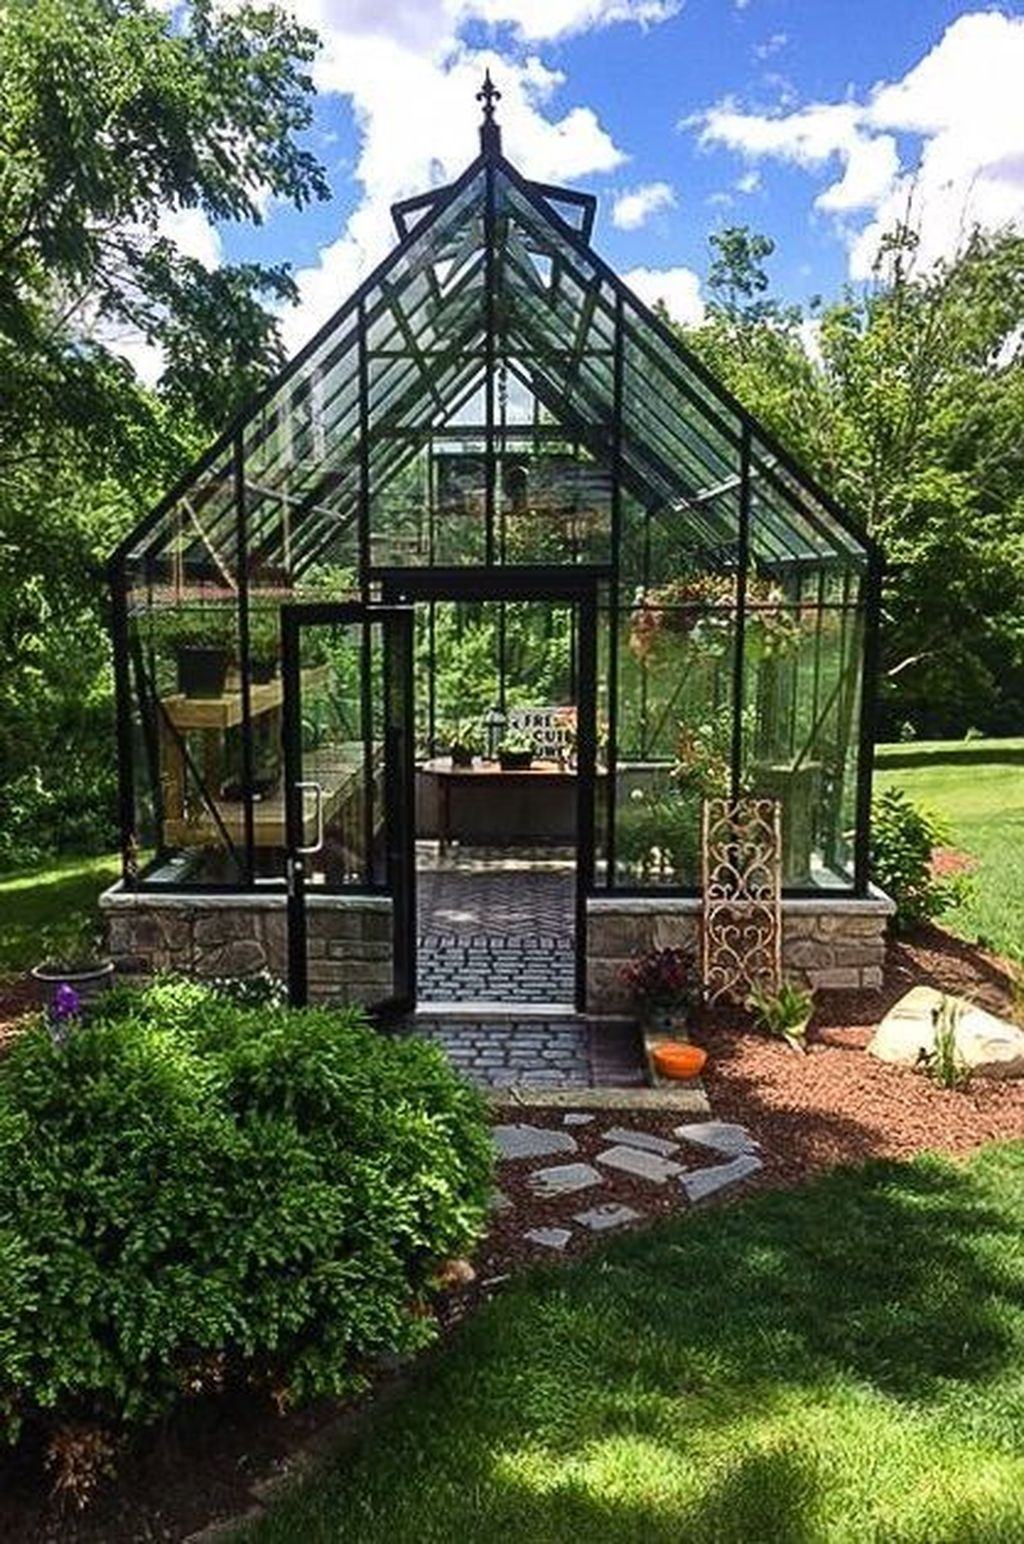 35 Latest Wooden Greenhouse Design Ideas For Home Backyard To Copy Backyard Greenhouse Outdoor Greenhouse Diy Greenhouse Plans